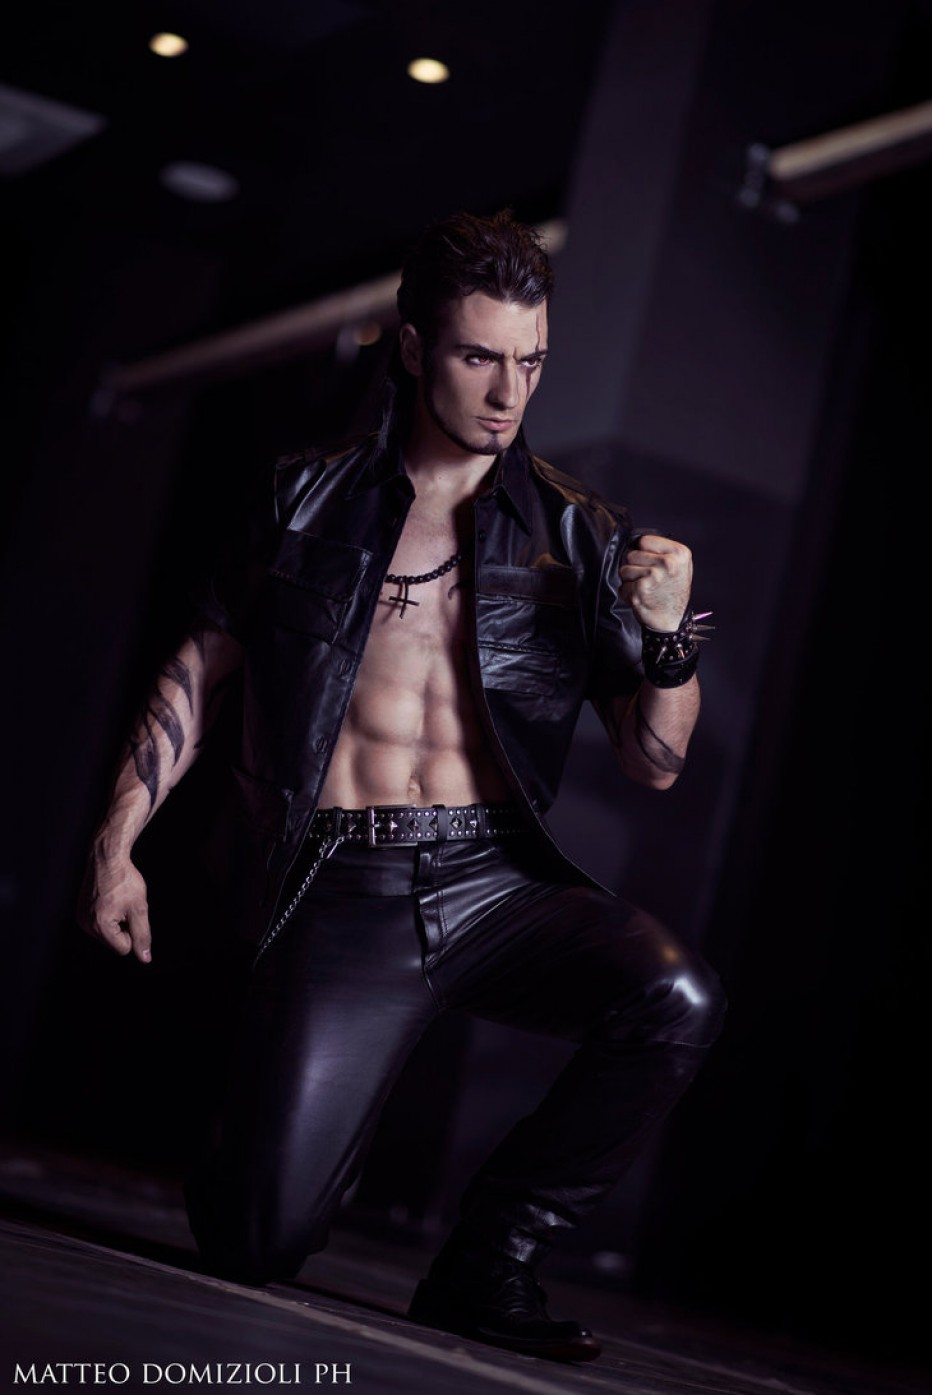 Gladiolus-Amicitia-Final-Fantasy-XV-Cosplay-Gamers-Heroes-2.jpg